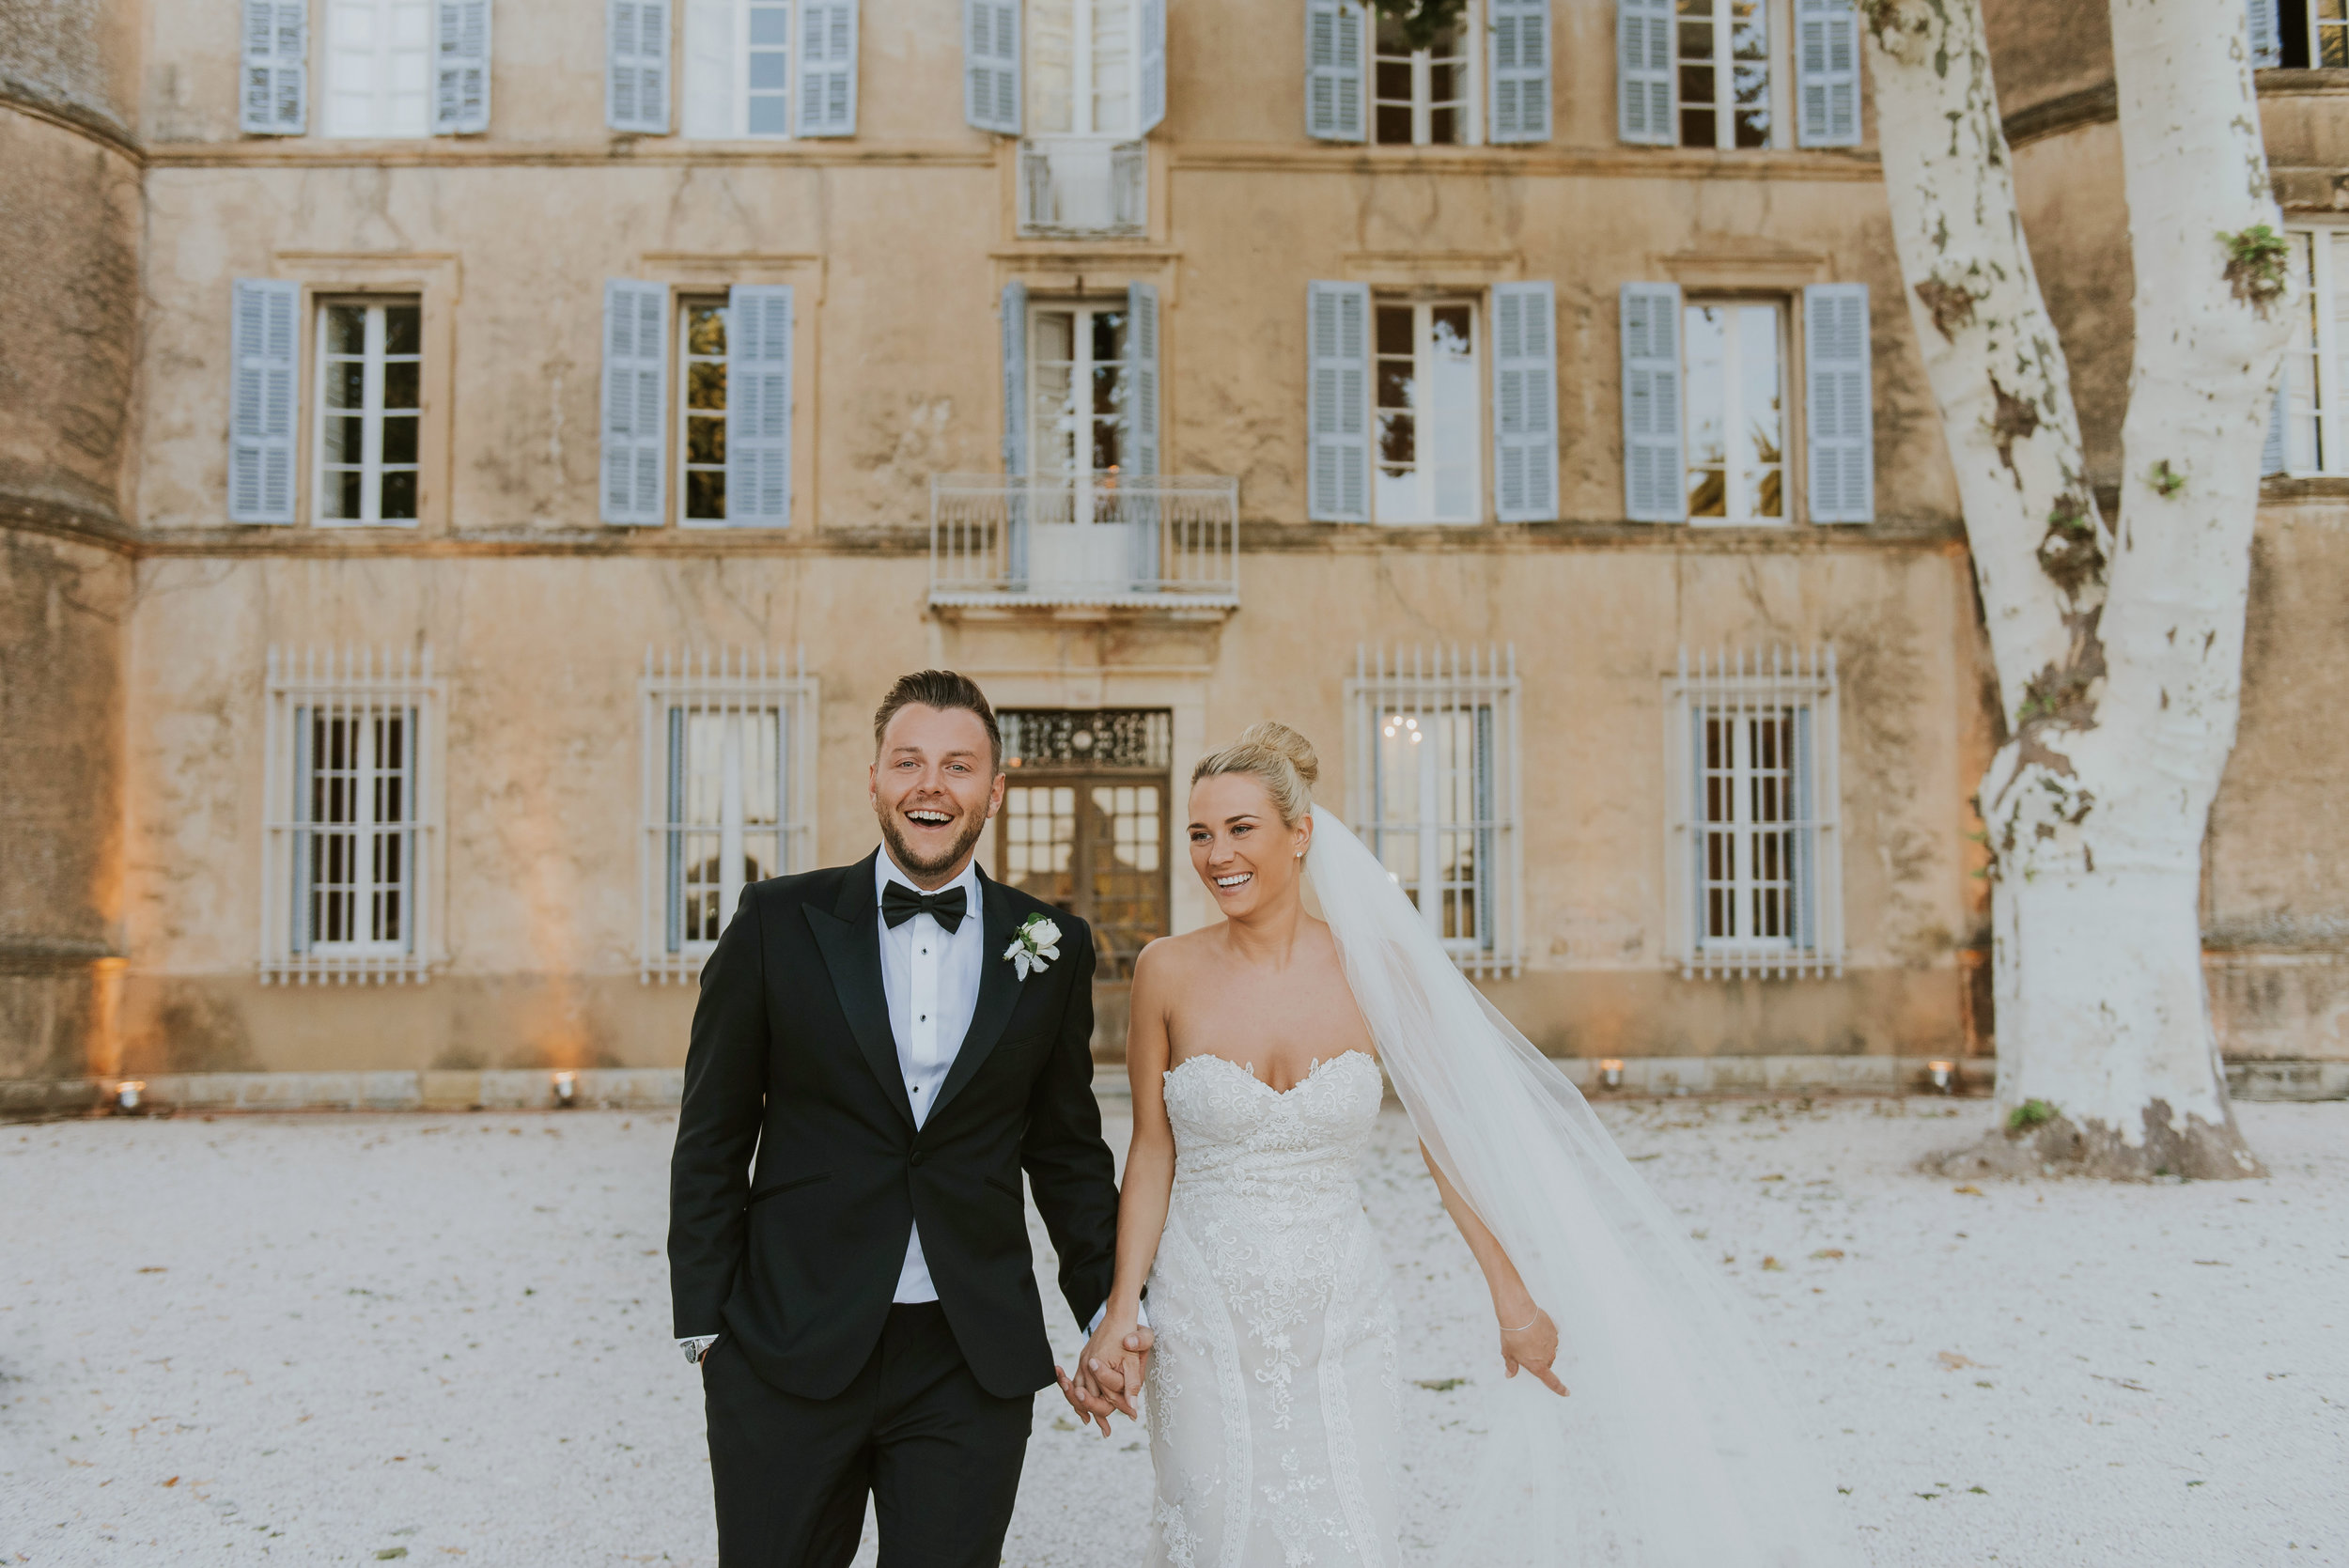 Chateau de Robernier Weddings